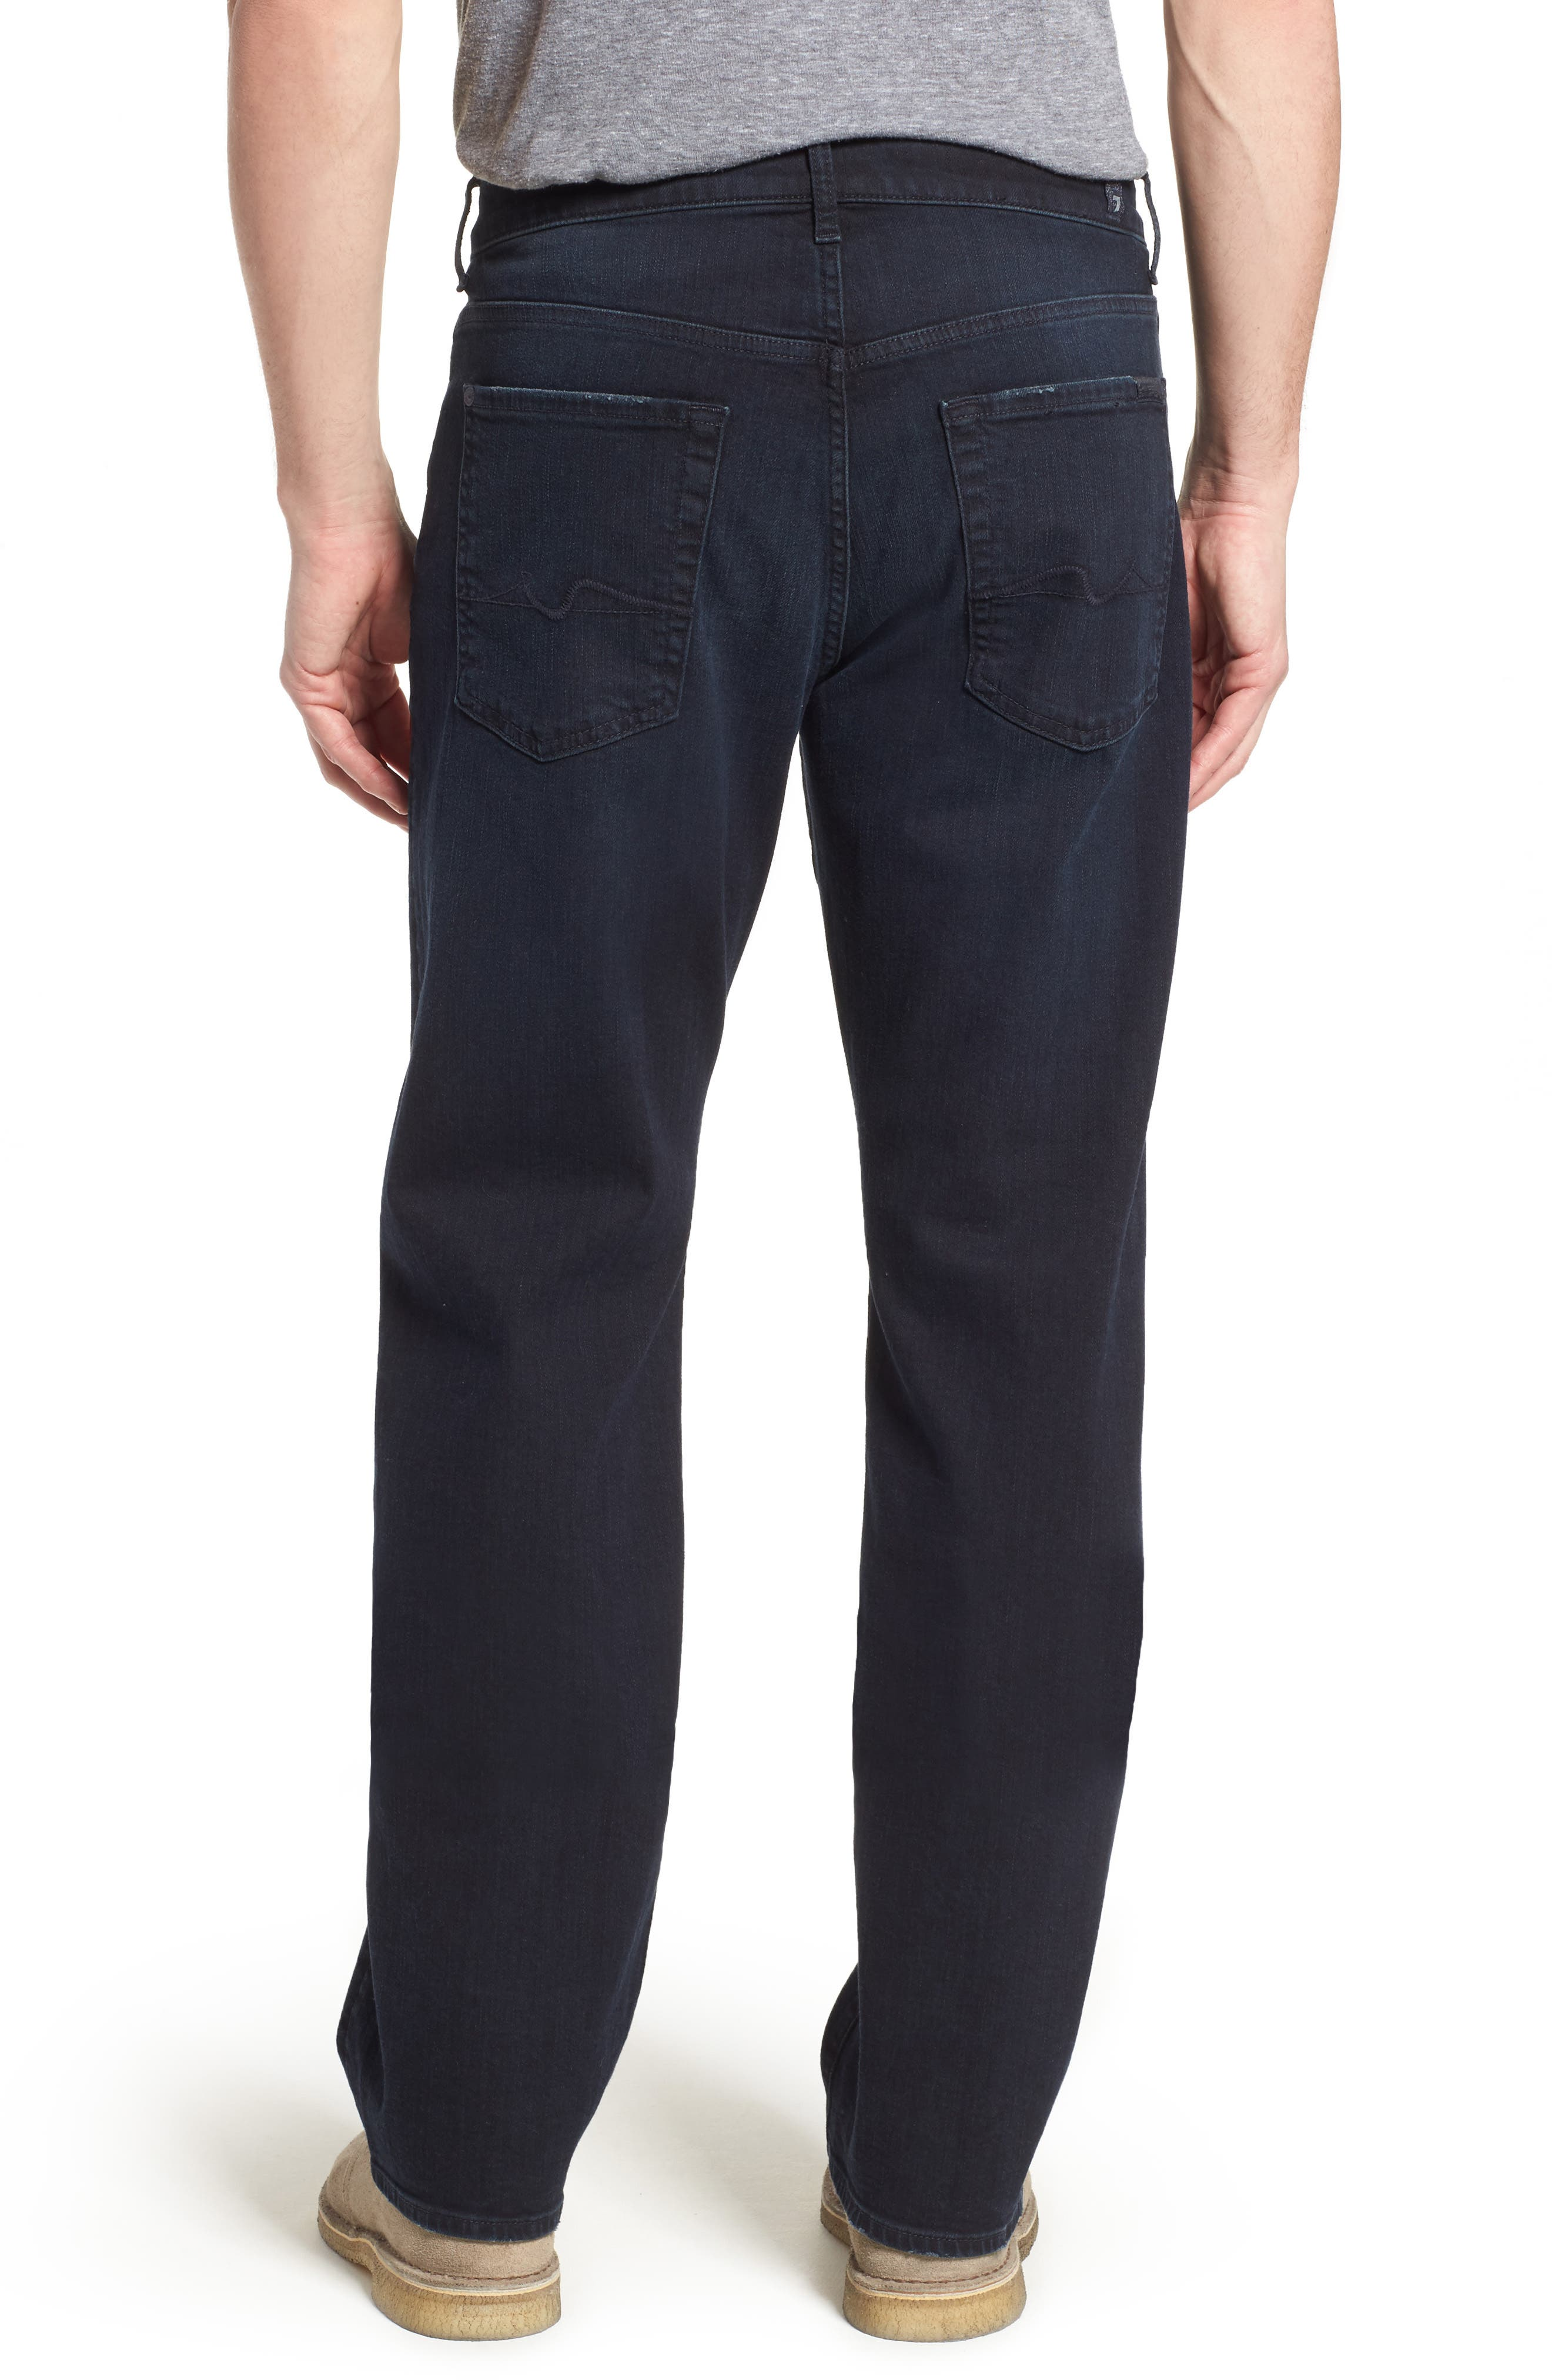 'Austyn- LuxePerformance' Relaxed Fit Jeans,                             Alternate thumbnail 2, color,                             Havoc